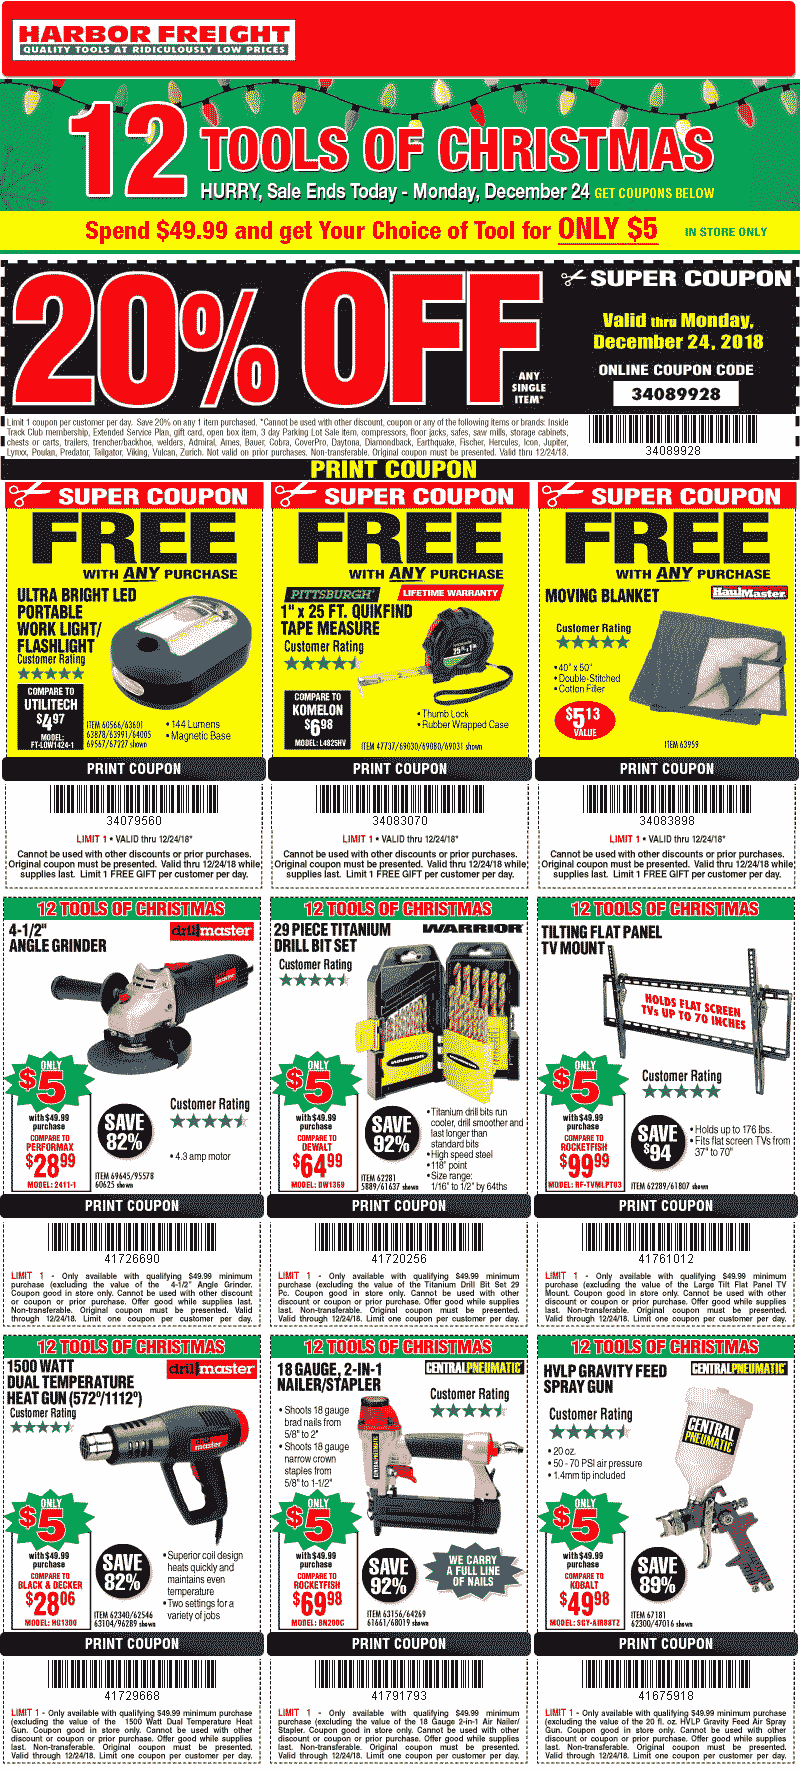 Harbor Freight Coupon February 2020 20% off a single item today at Harbor Freight Tools, or online via promo code 34089928